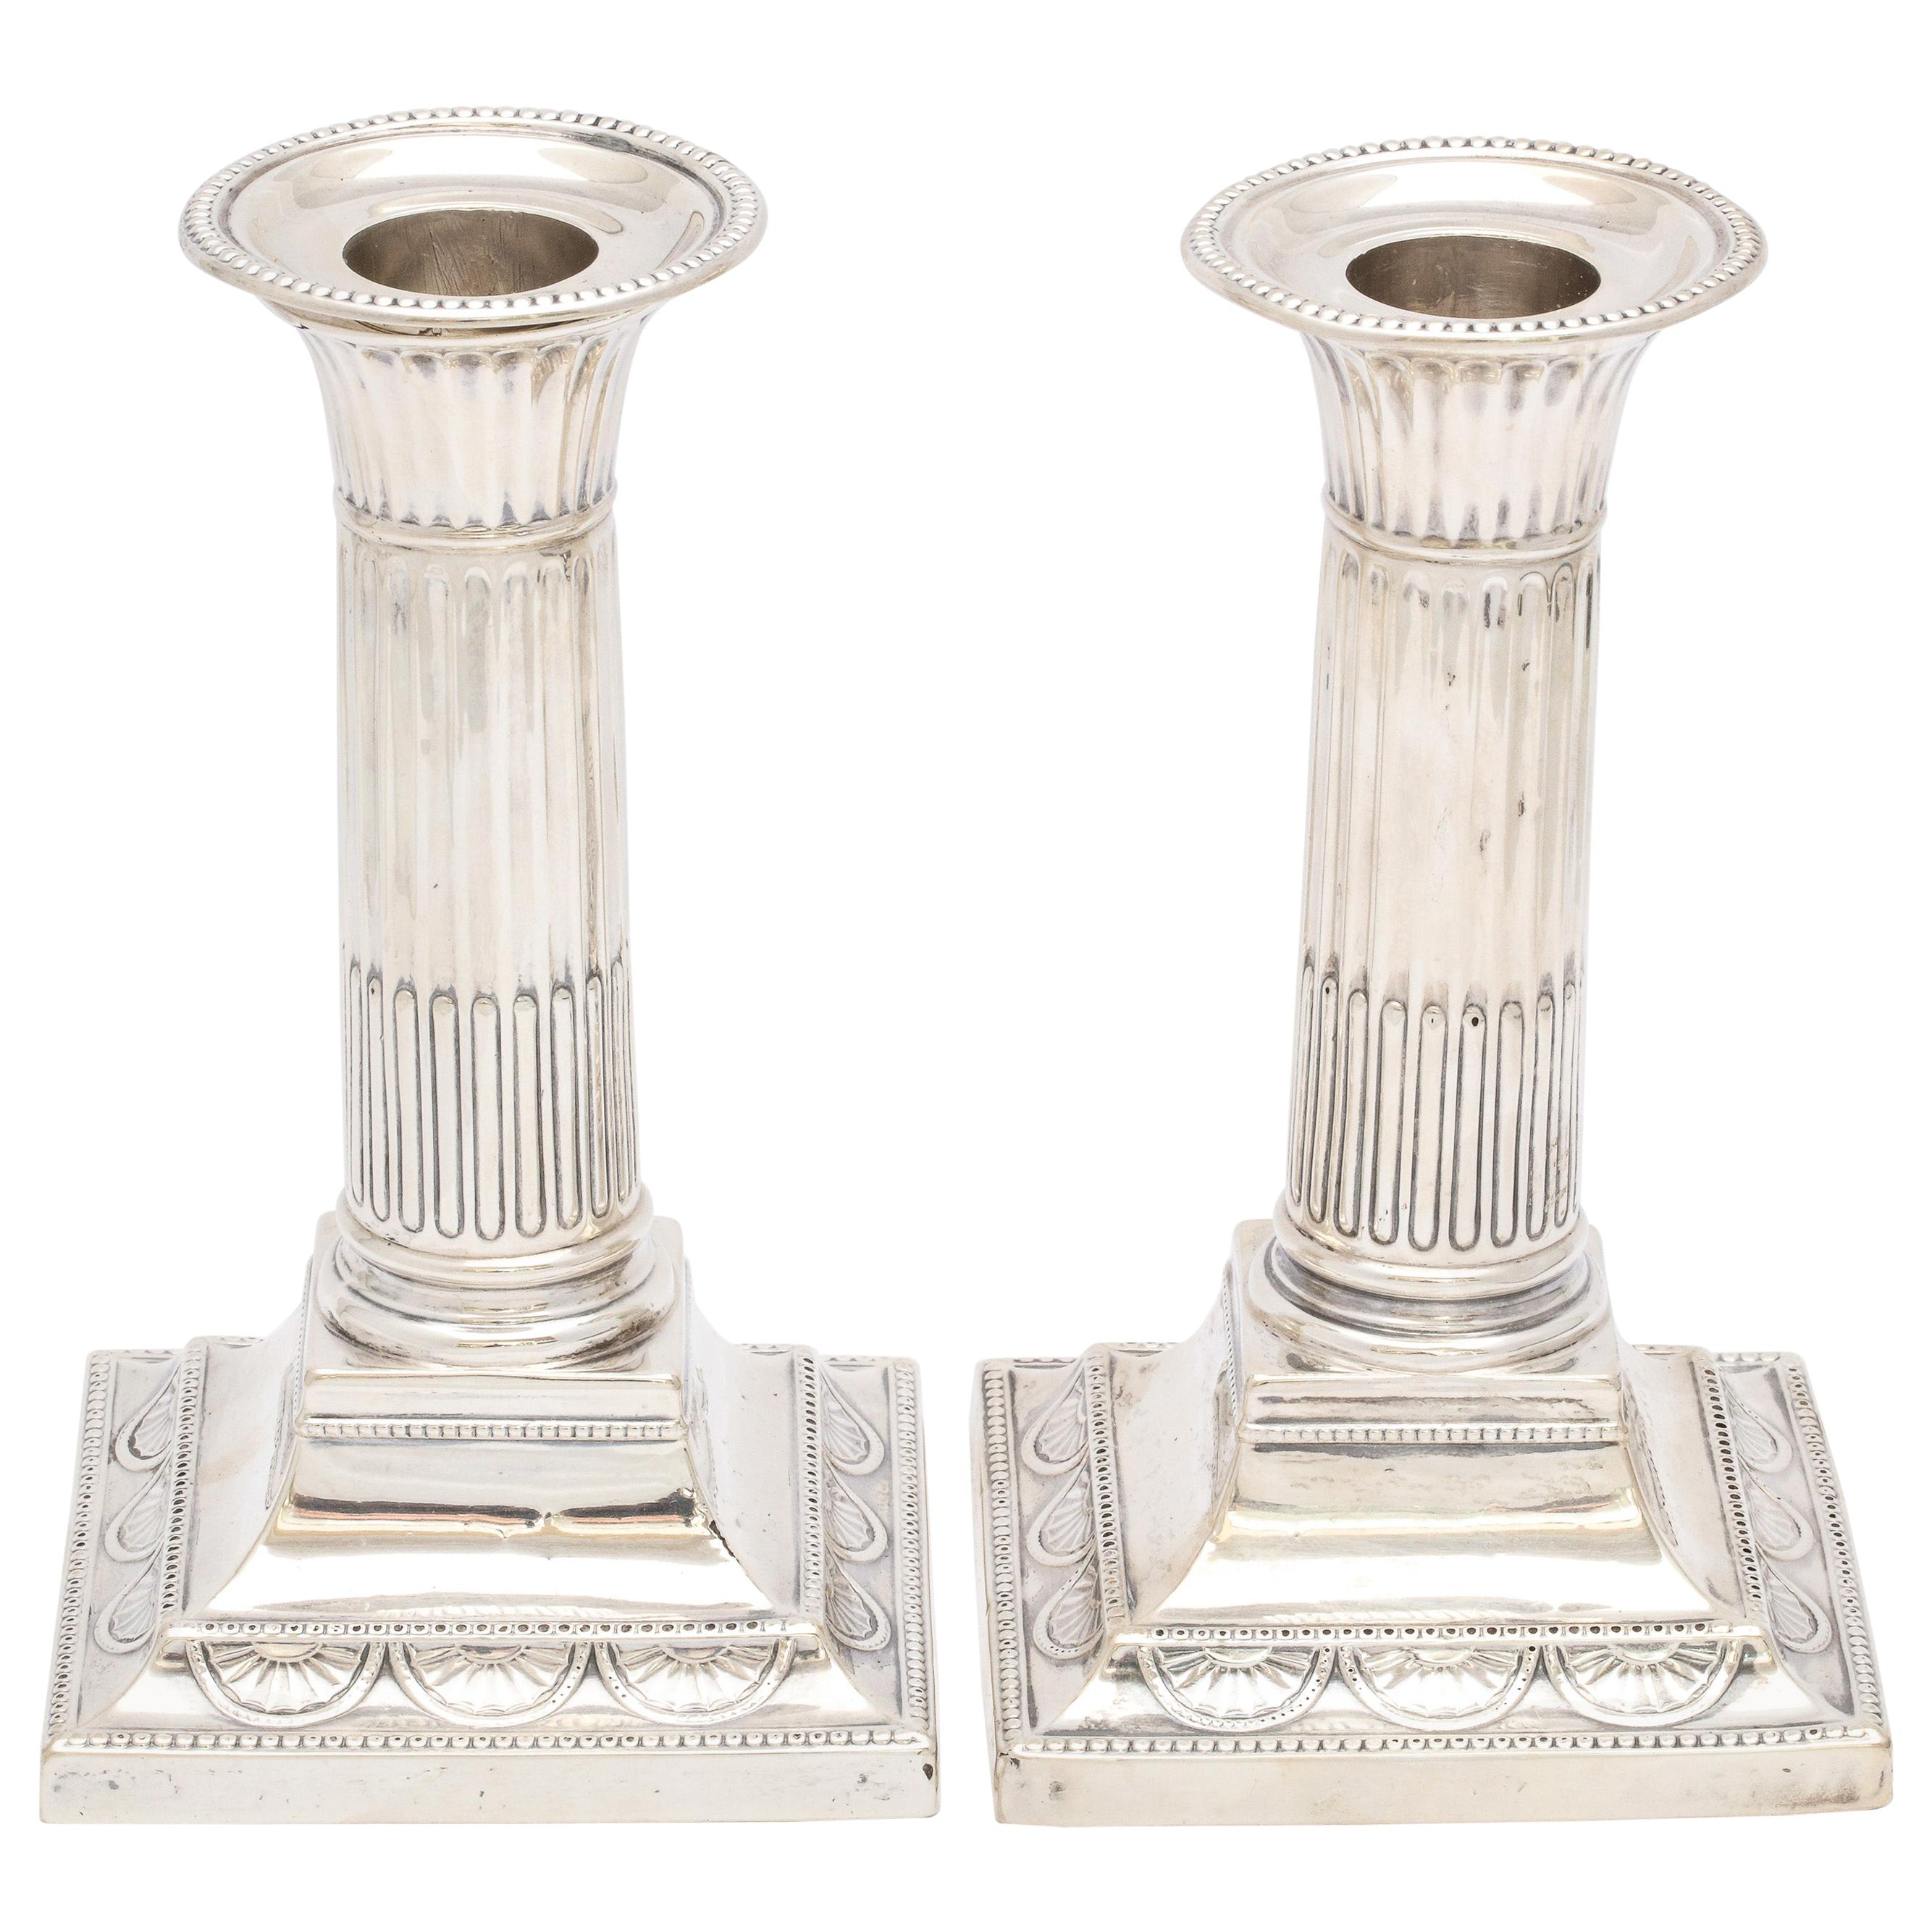 Pair of Neoclassical Sterling Silver Column-Form Candlesticks, Hutton and Sons